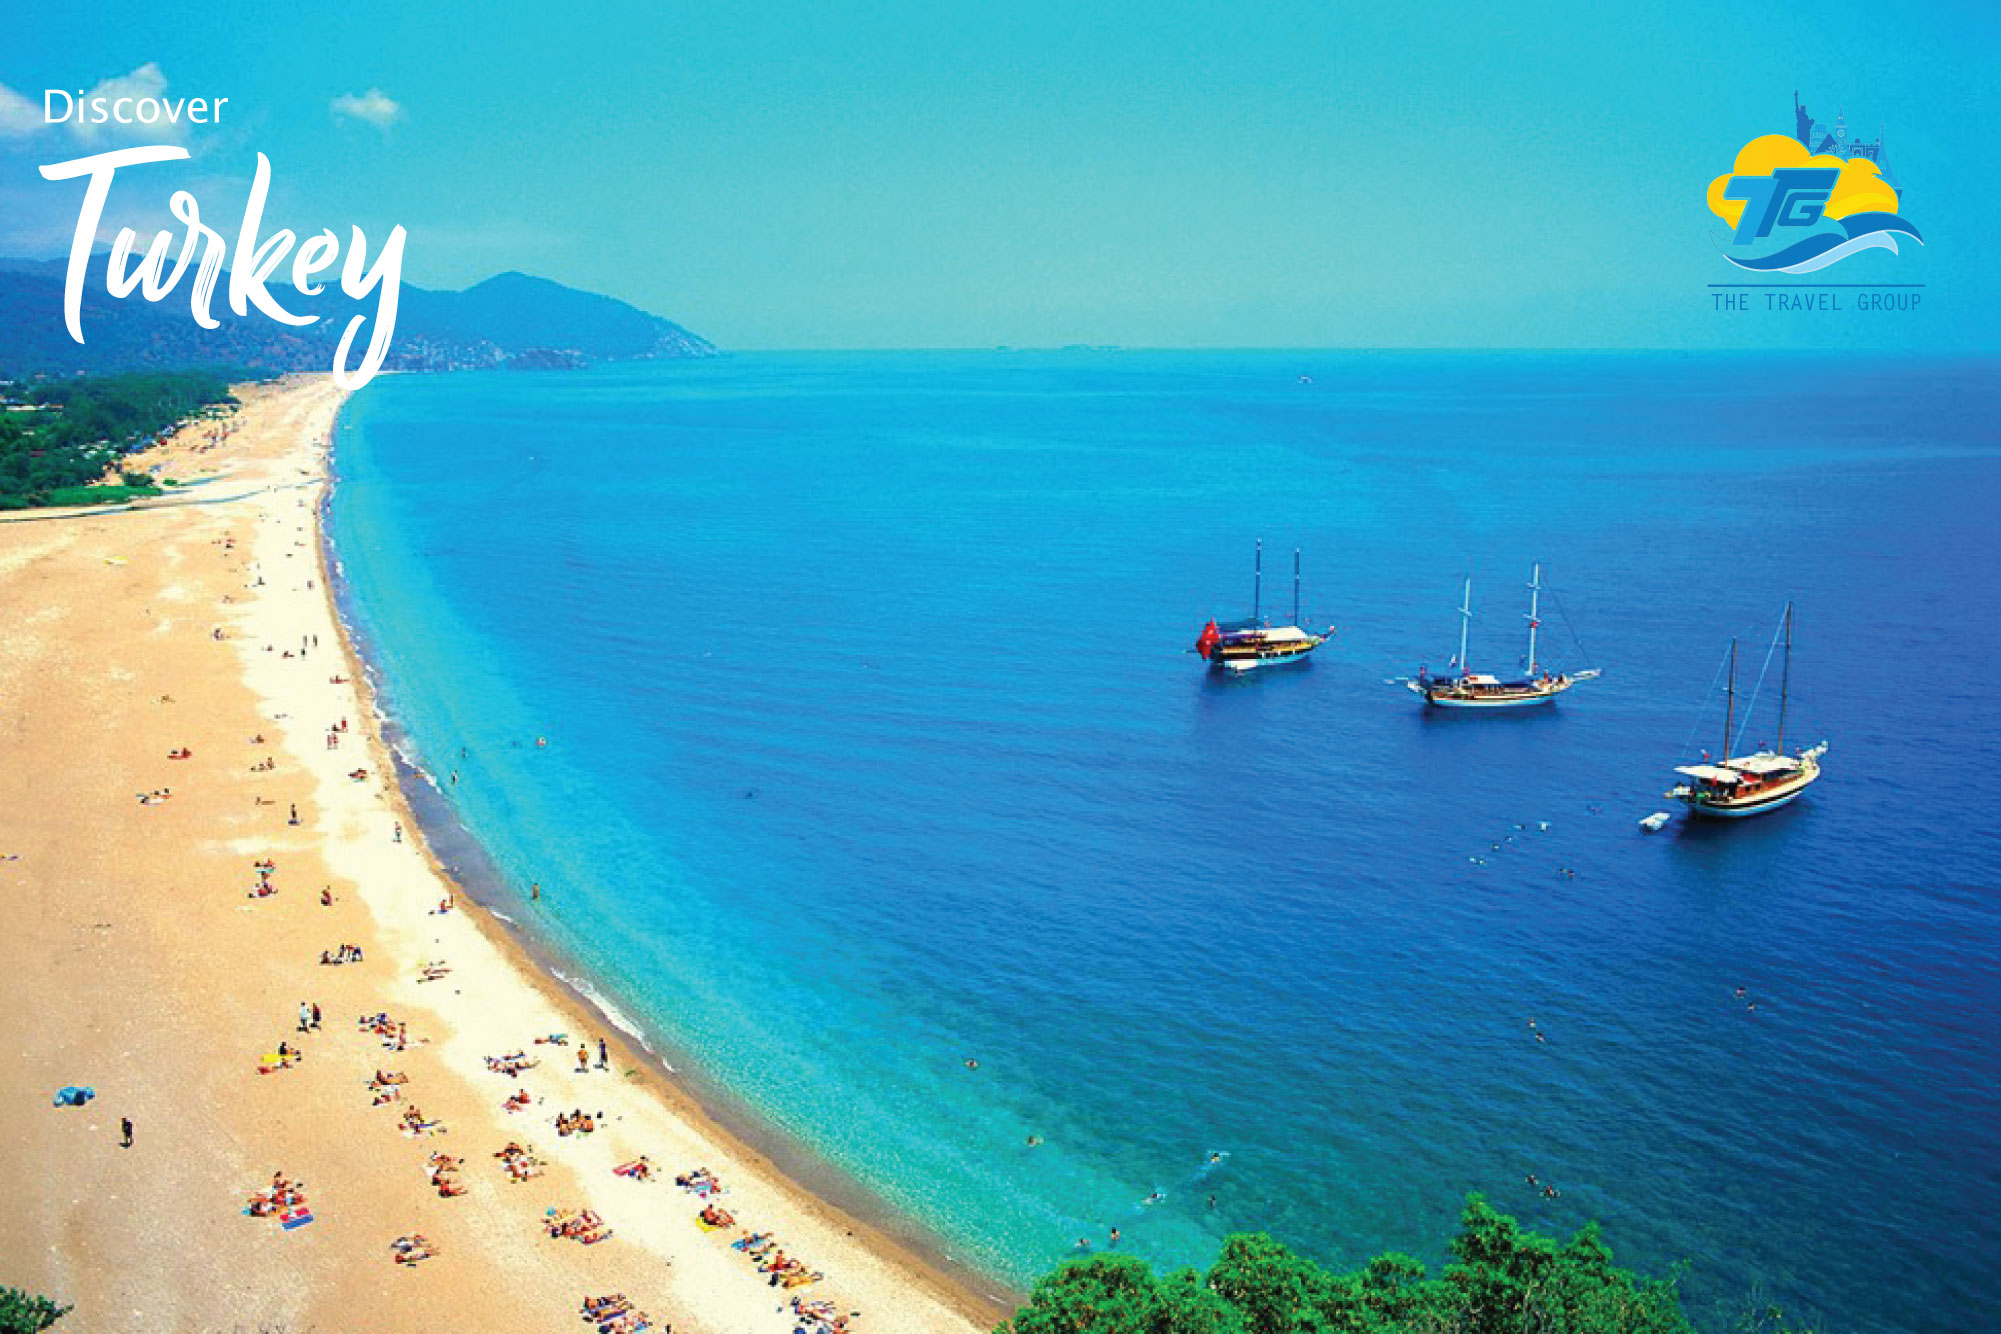 Offer & Packages for Turkey